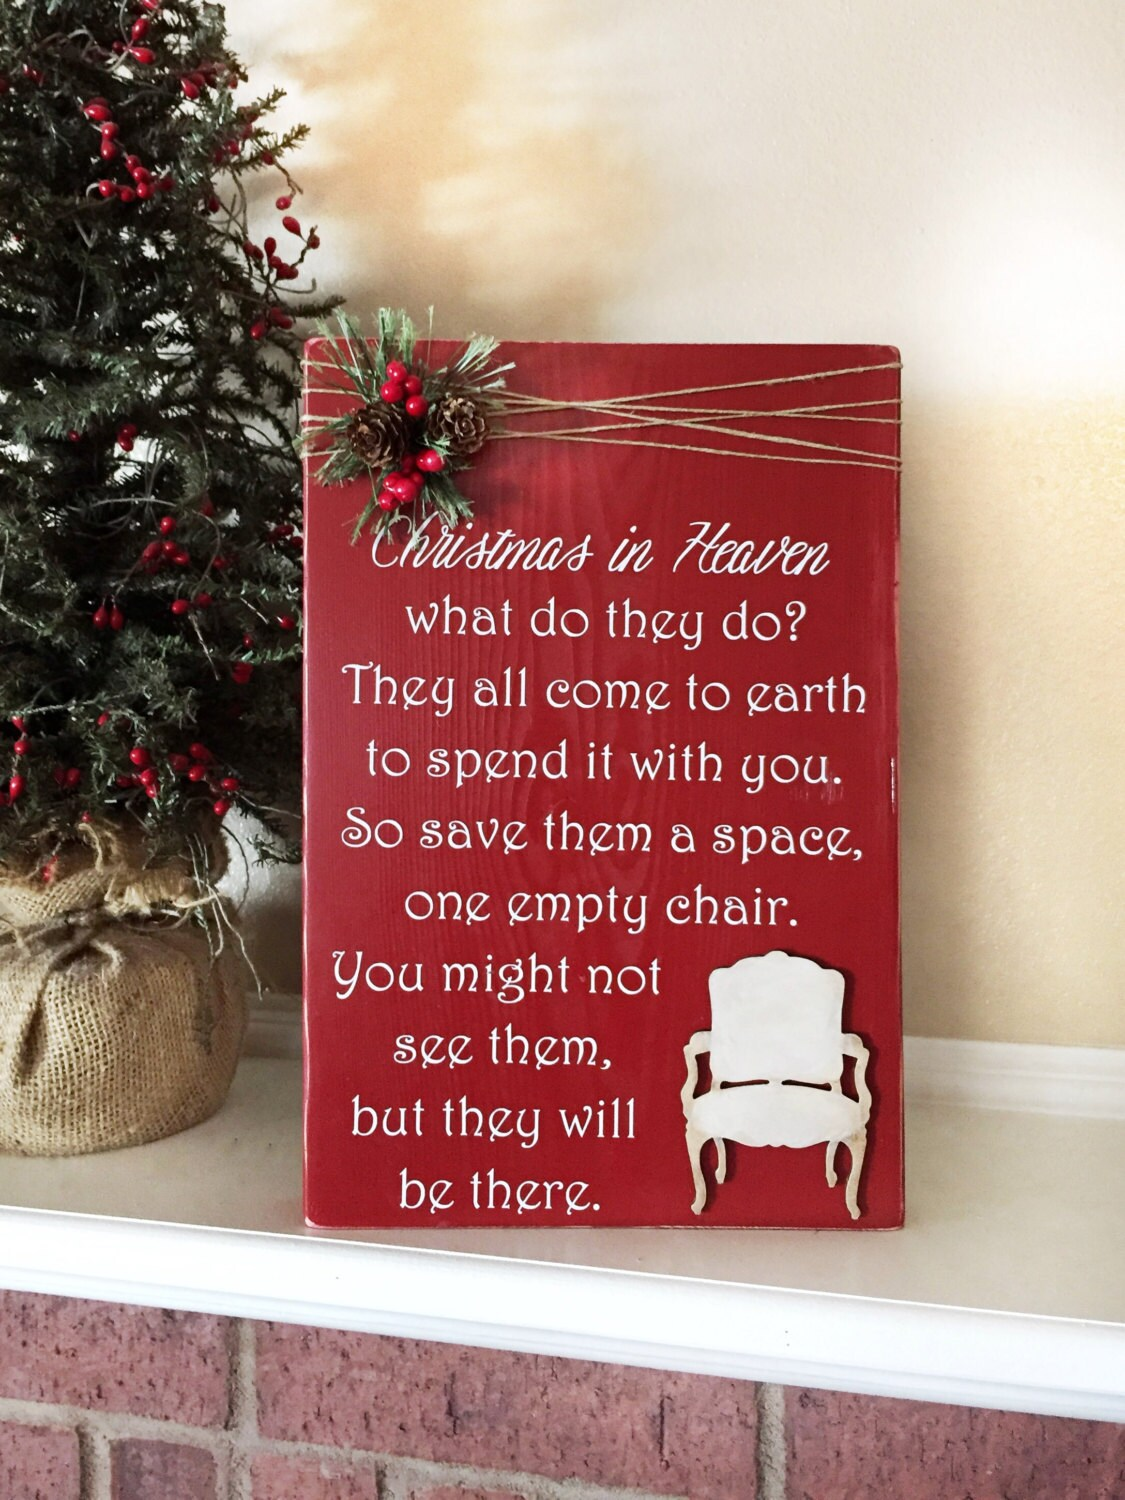 Christmas in heaven poem with chair decorations